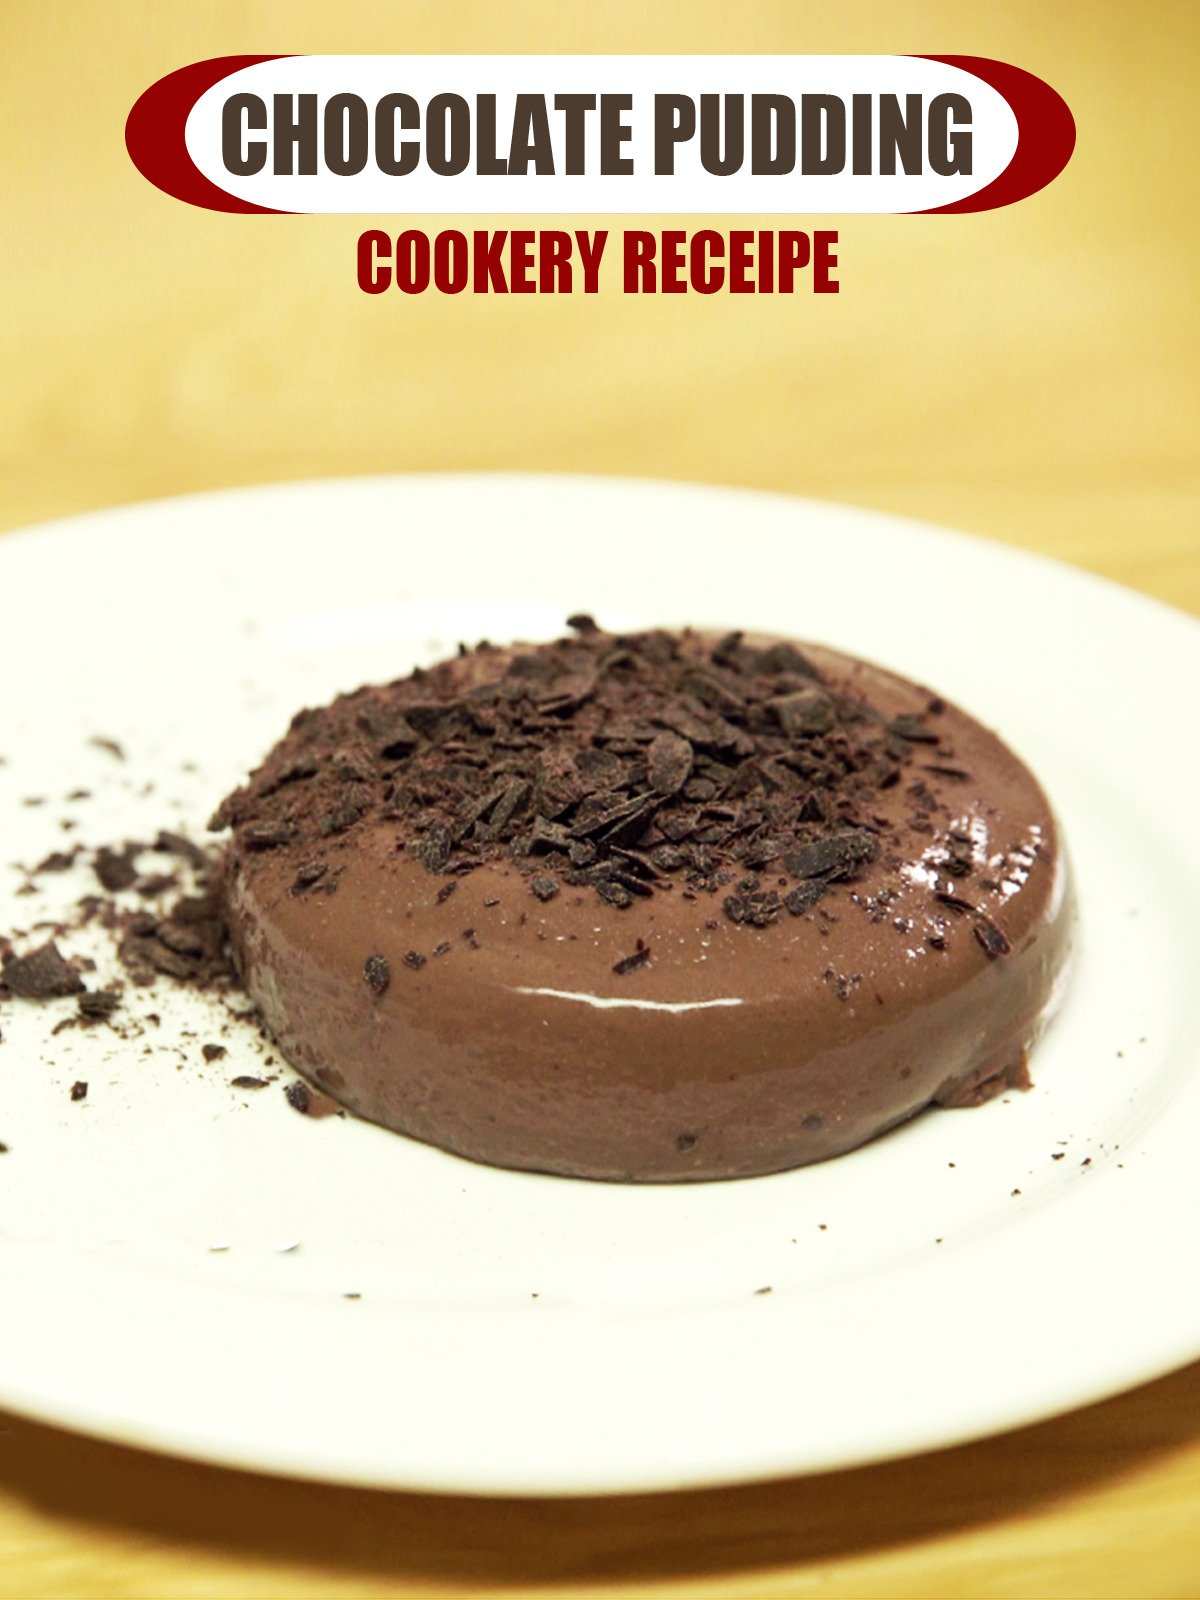 Clip: Chocolate Pudding Cookery Receipe